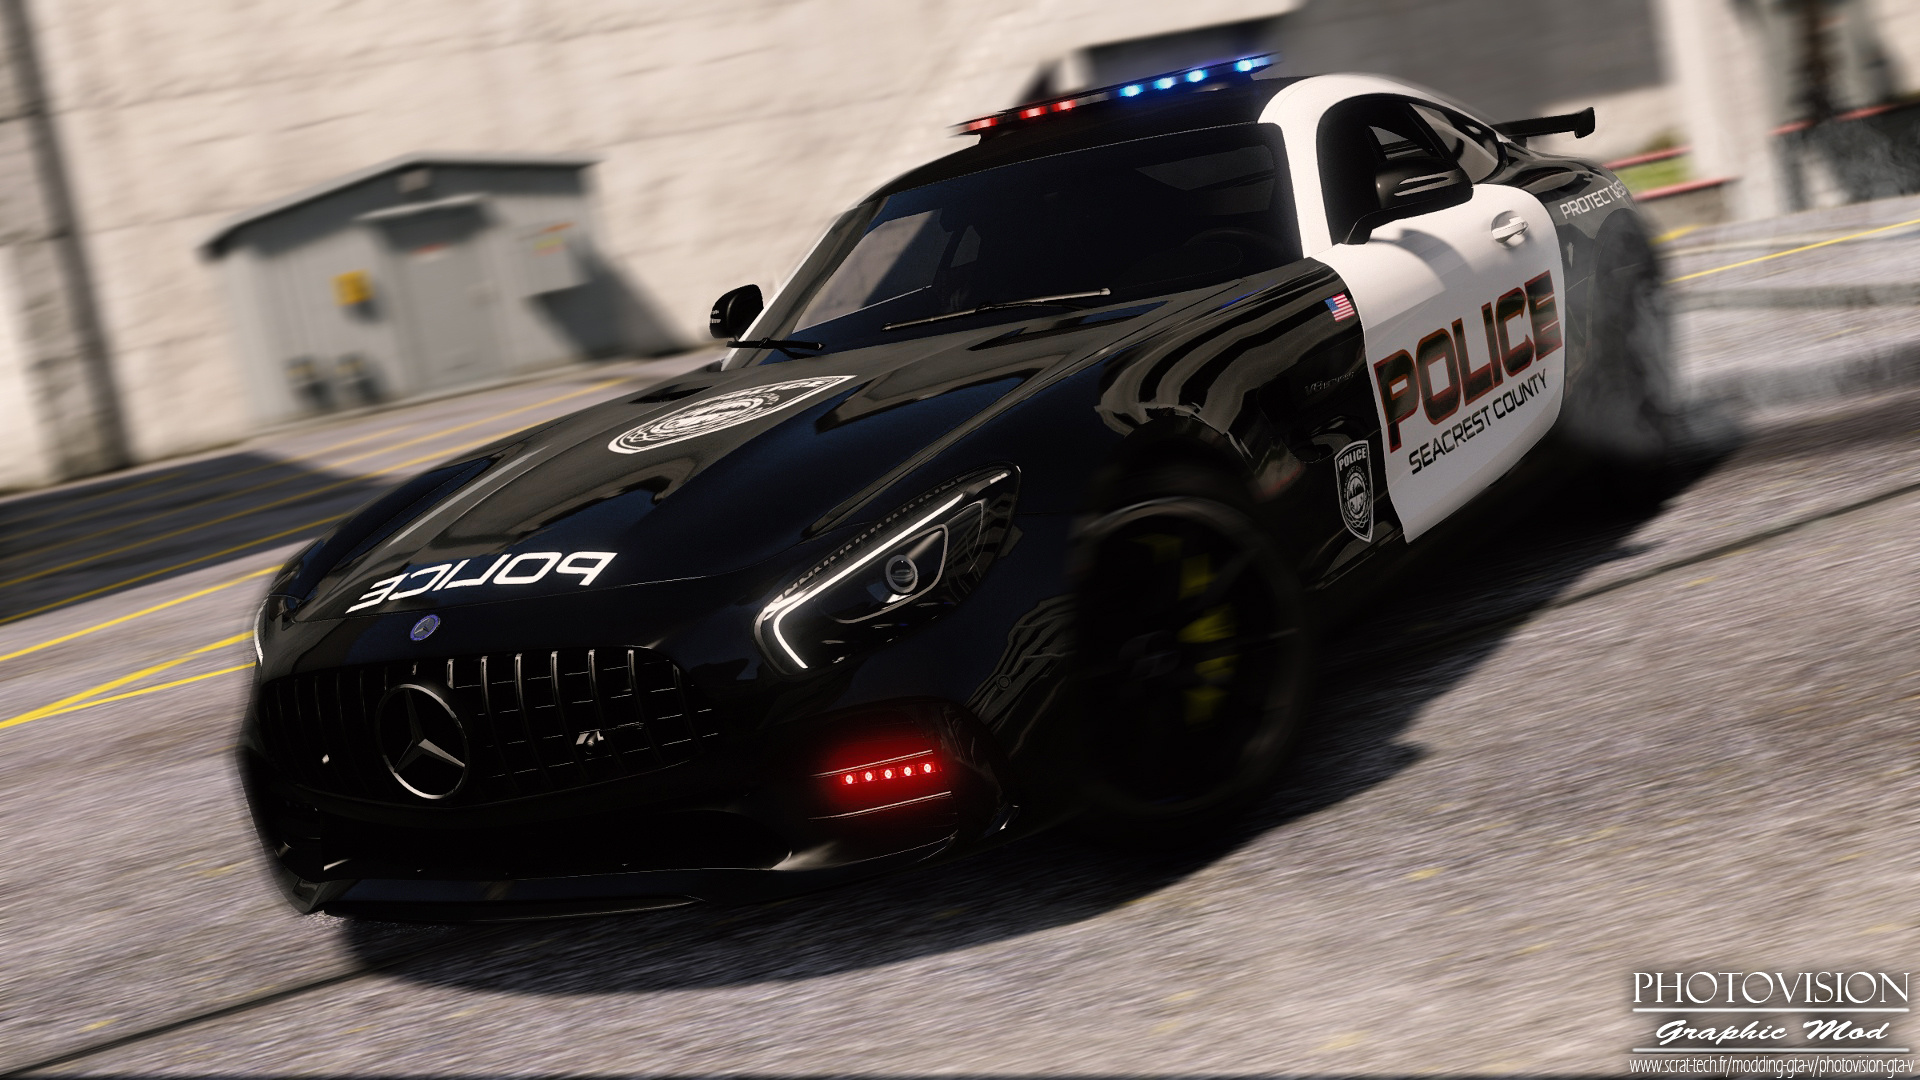 mercedes benz amg gt r 2017 hot pursuit police add on replace template gta5. Black Bedroom Furniture Sets. Home Design Ideas